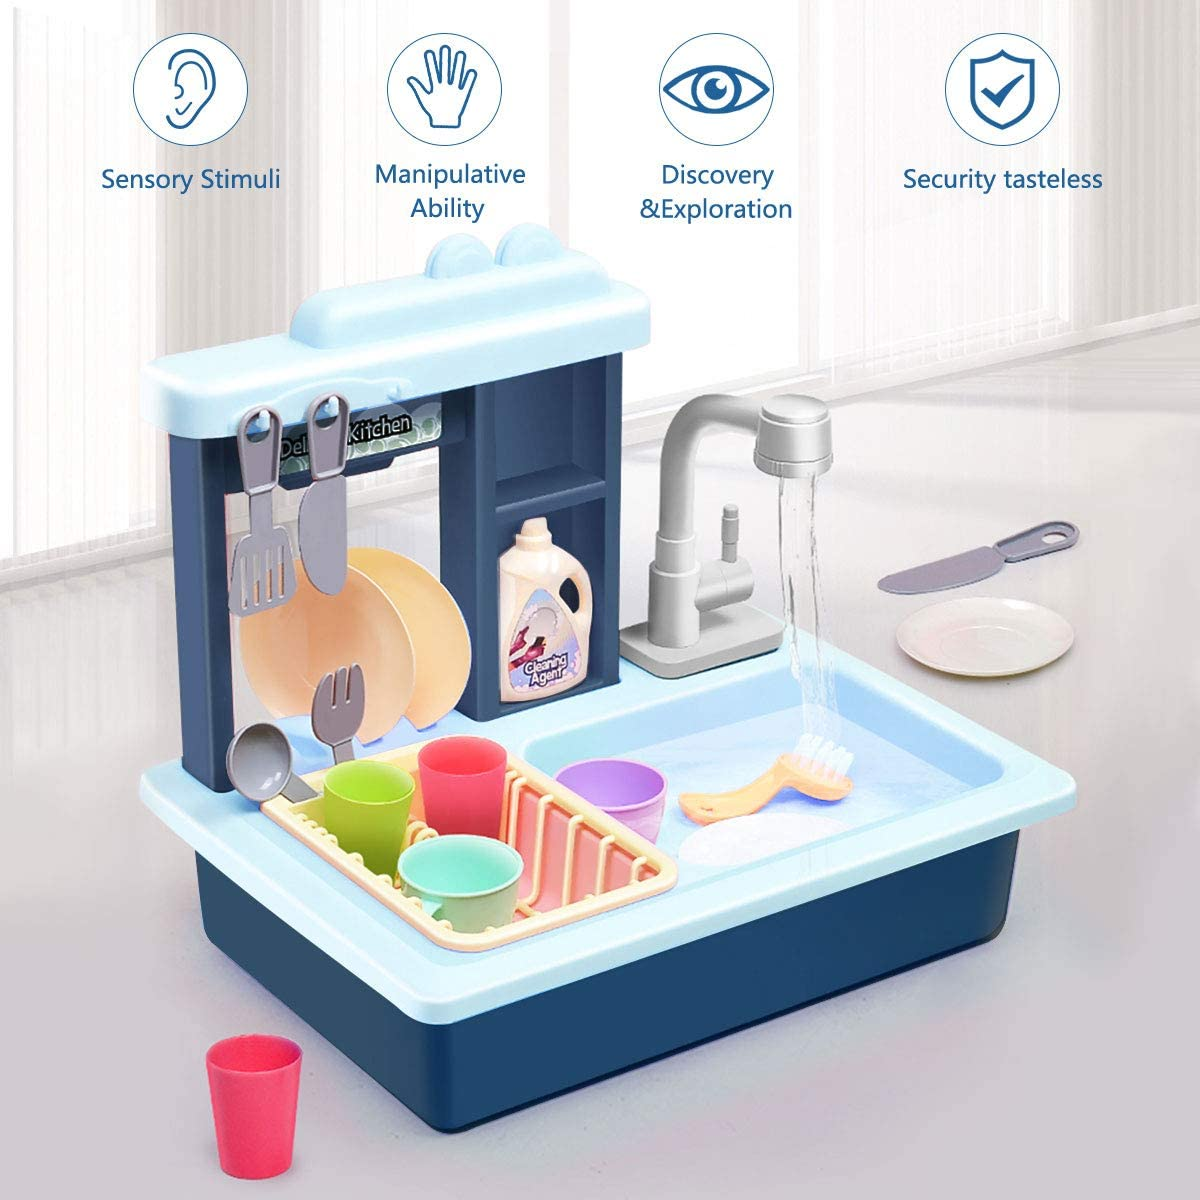 Kids Kitchen Play Sink Dishes Toys, Electric Dishwasher Playing Sink Toy with Running Water Play House Pretend Role Play Kitchens Set Toys for Boys Girls Toddlers - Childrens Kitchen Helper Playsets